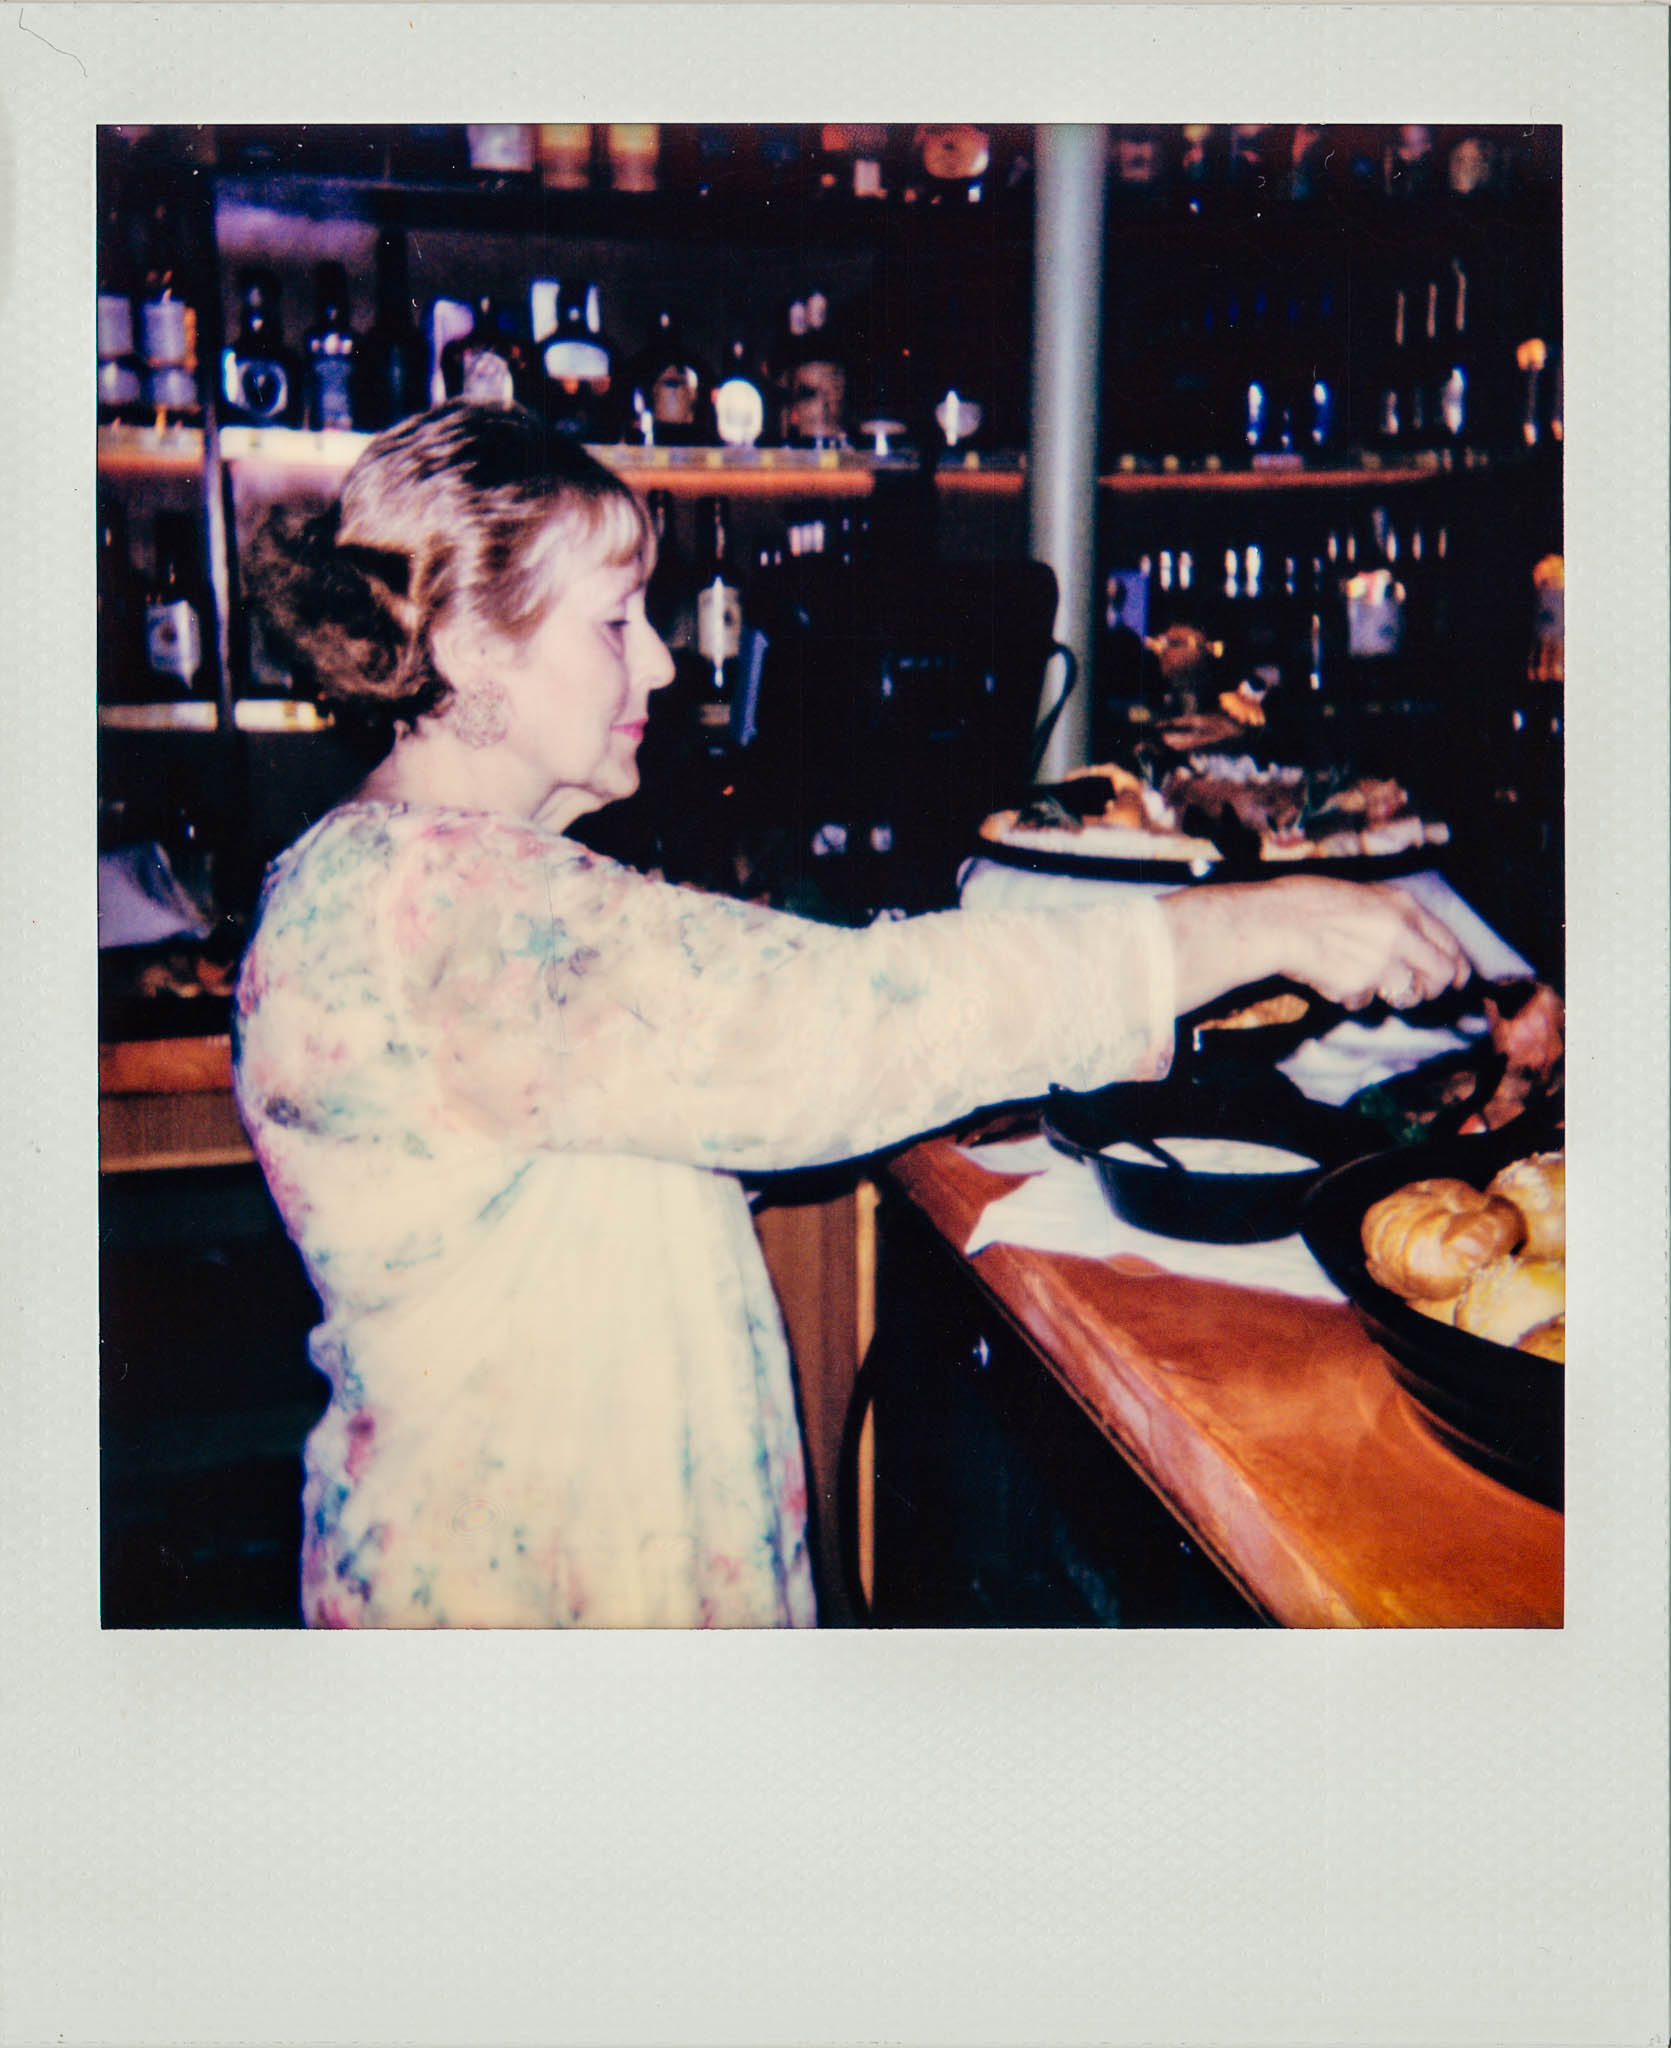 Linda Updike filling a plate with food at Wallys Mills Ave Liquors.